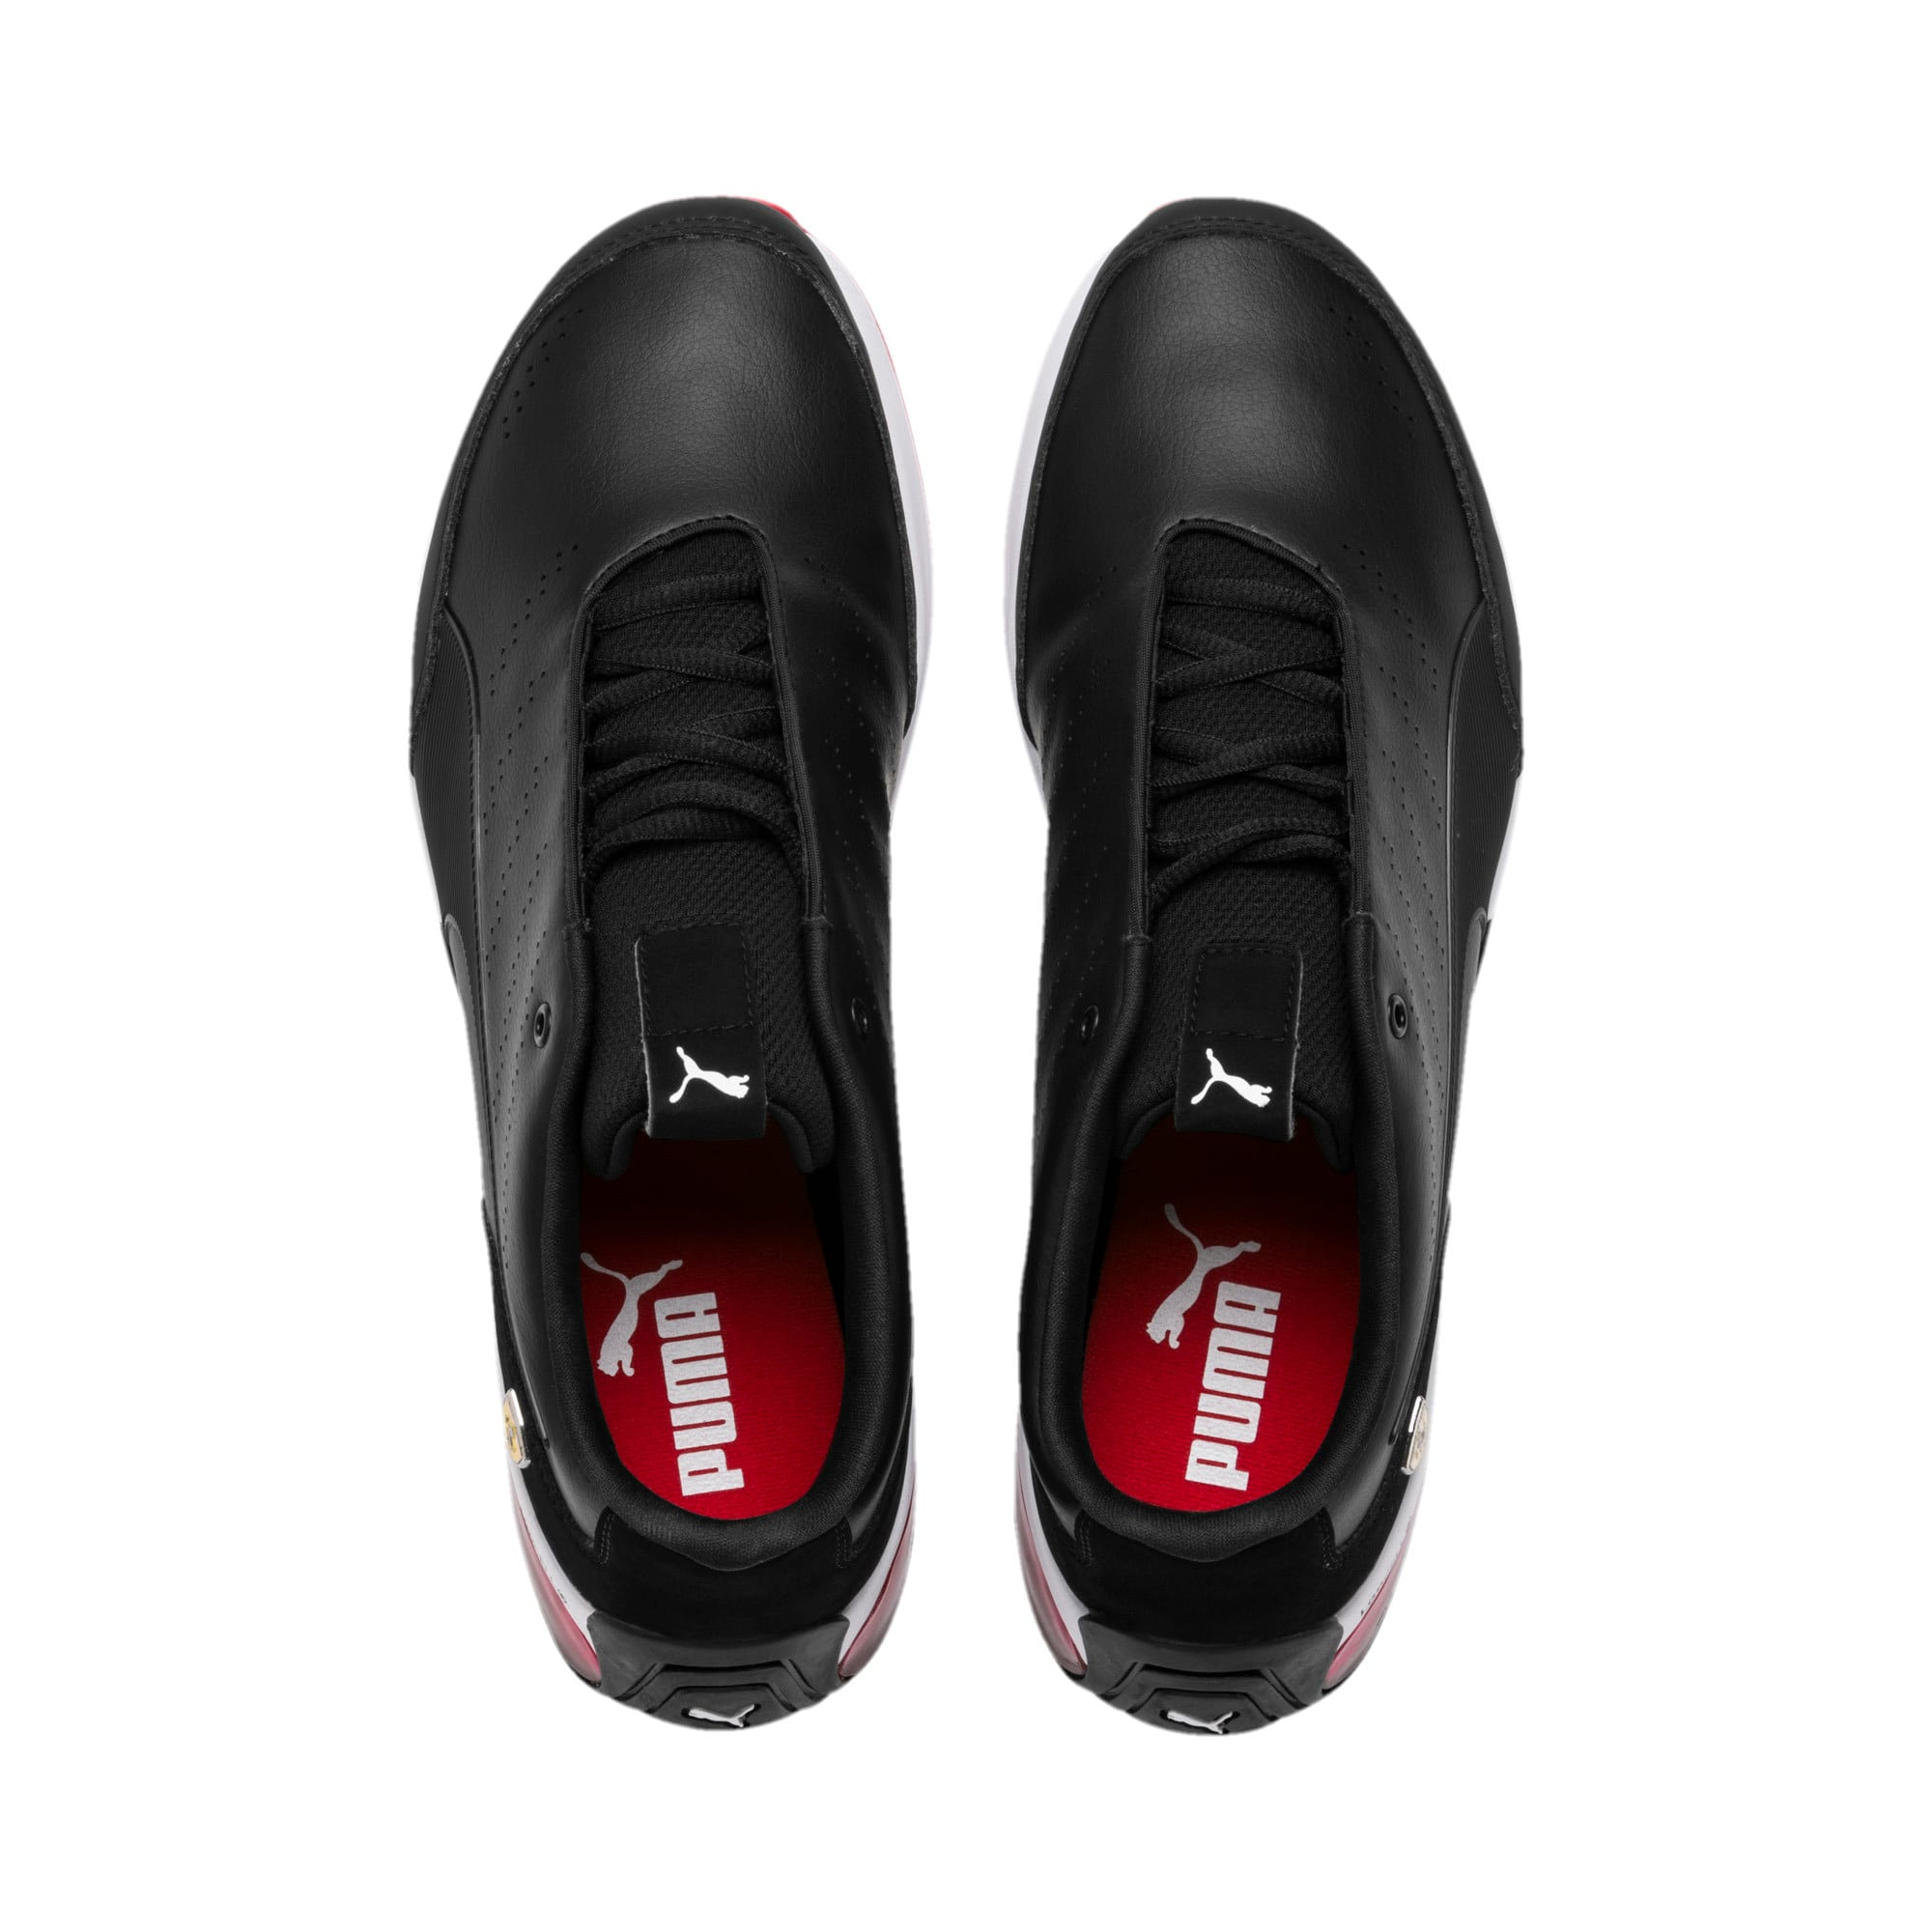 Thumbnail 7 of Ferrari Kart Cat X Trainers, Puma Black-Puma Black, medium